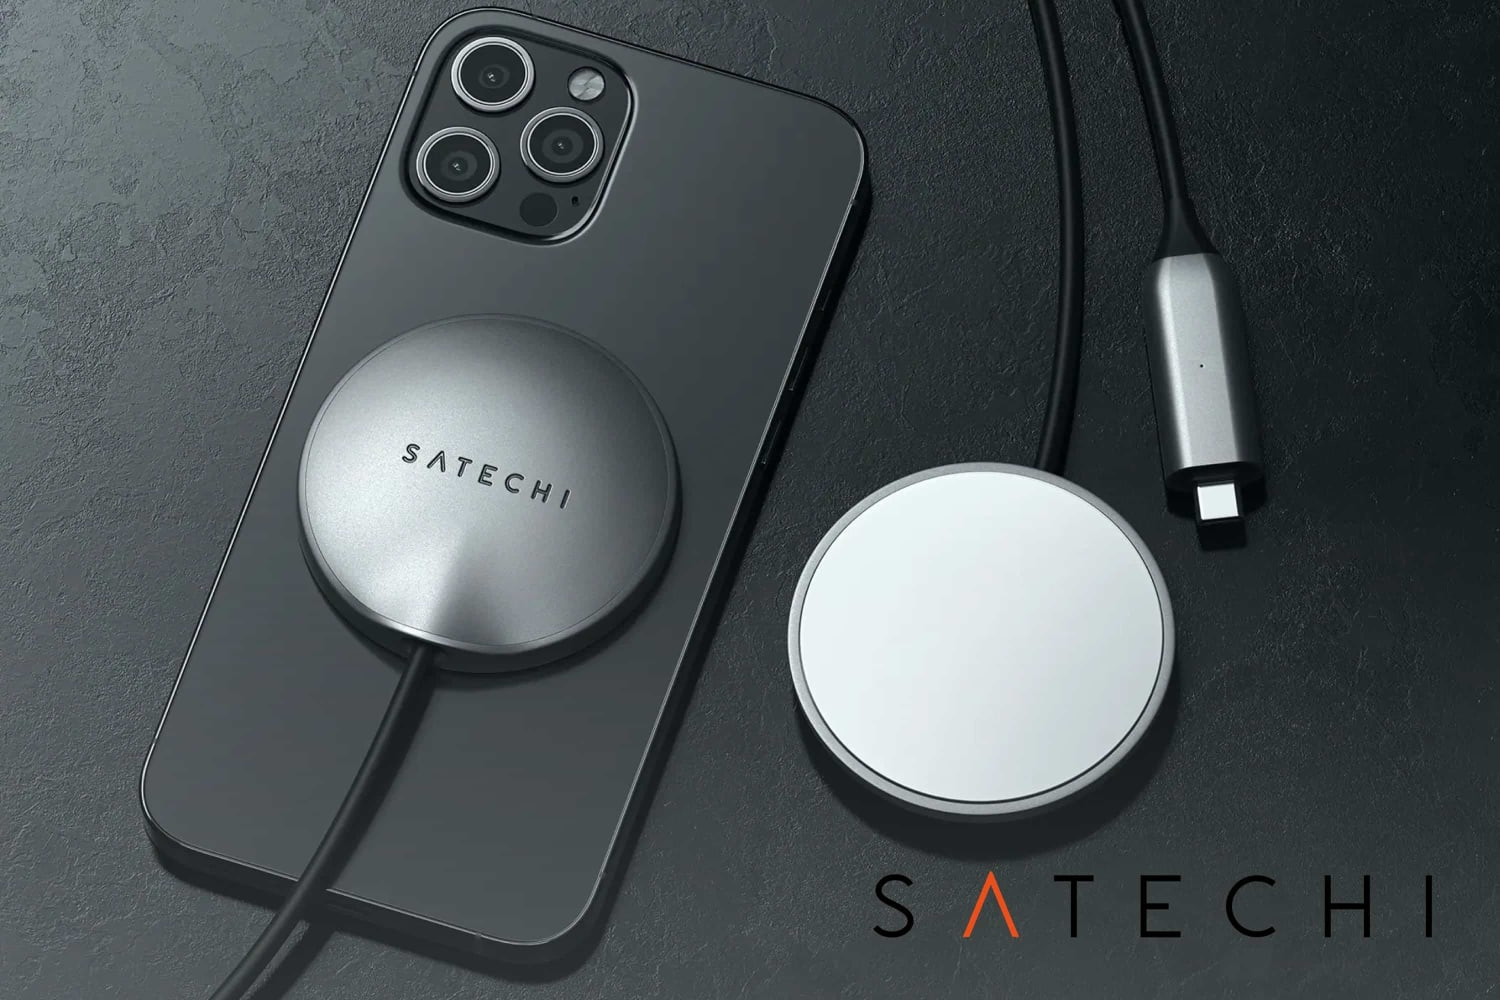 satechi-introduces-usb-c-magnetic-wireless-charging-cable-20201204-1